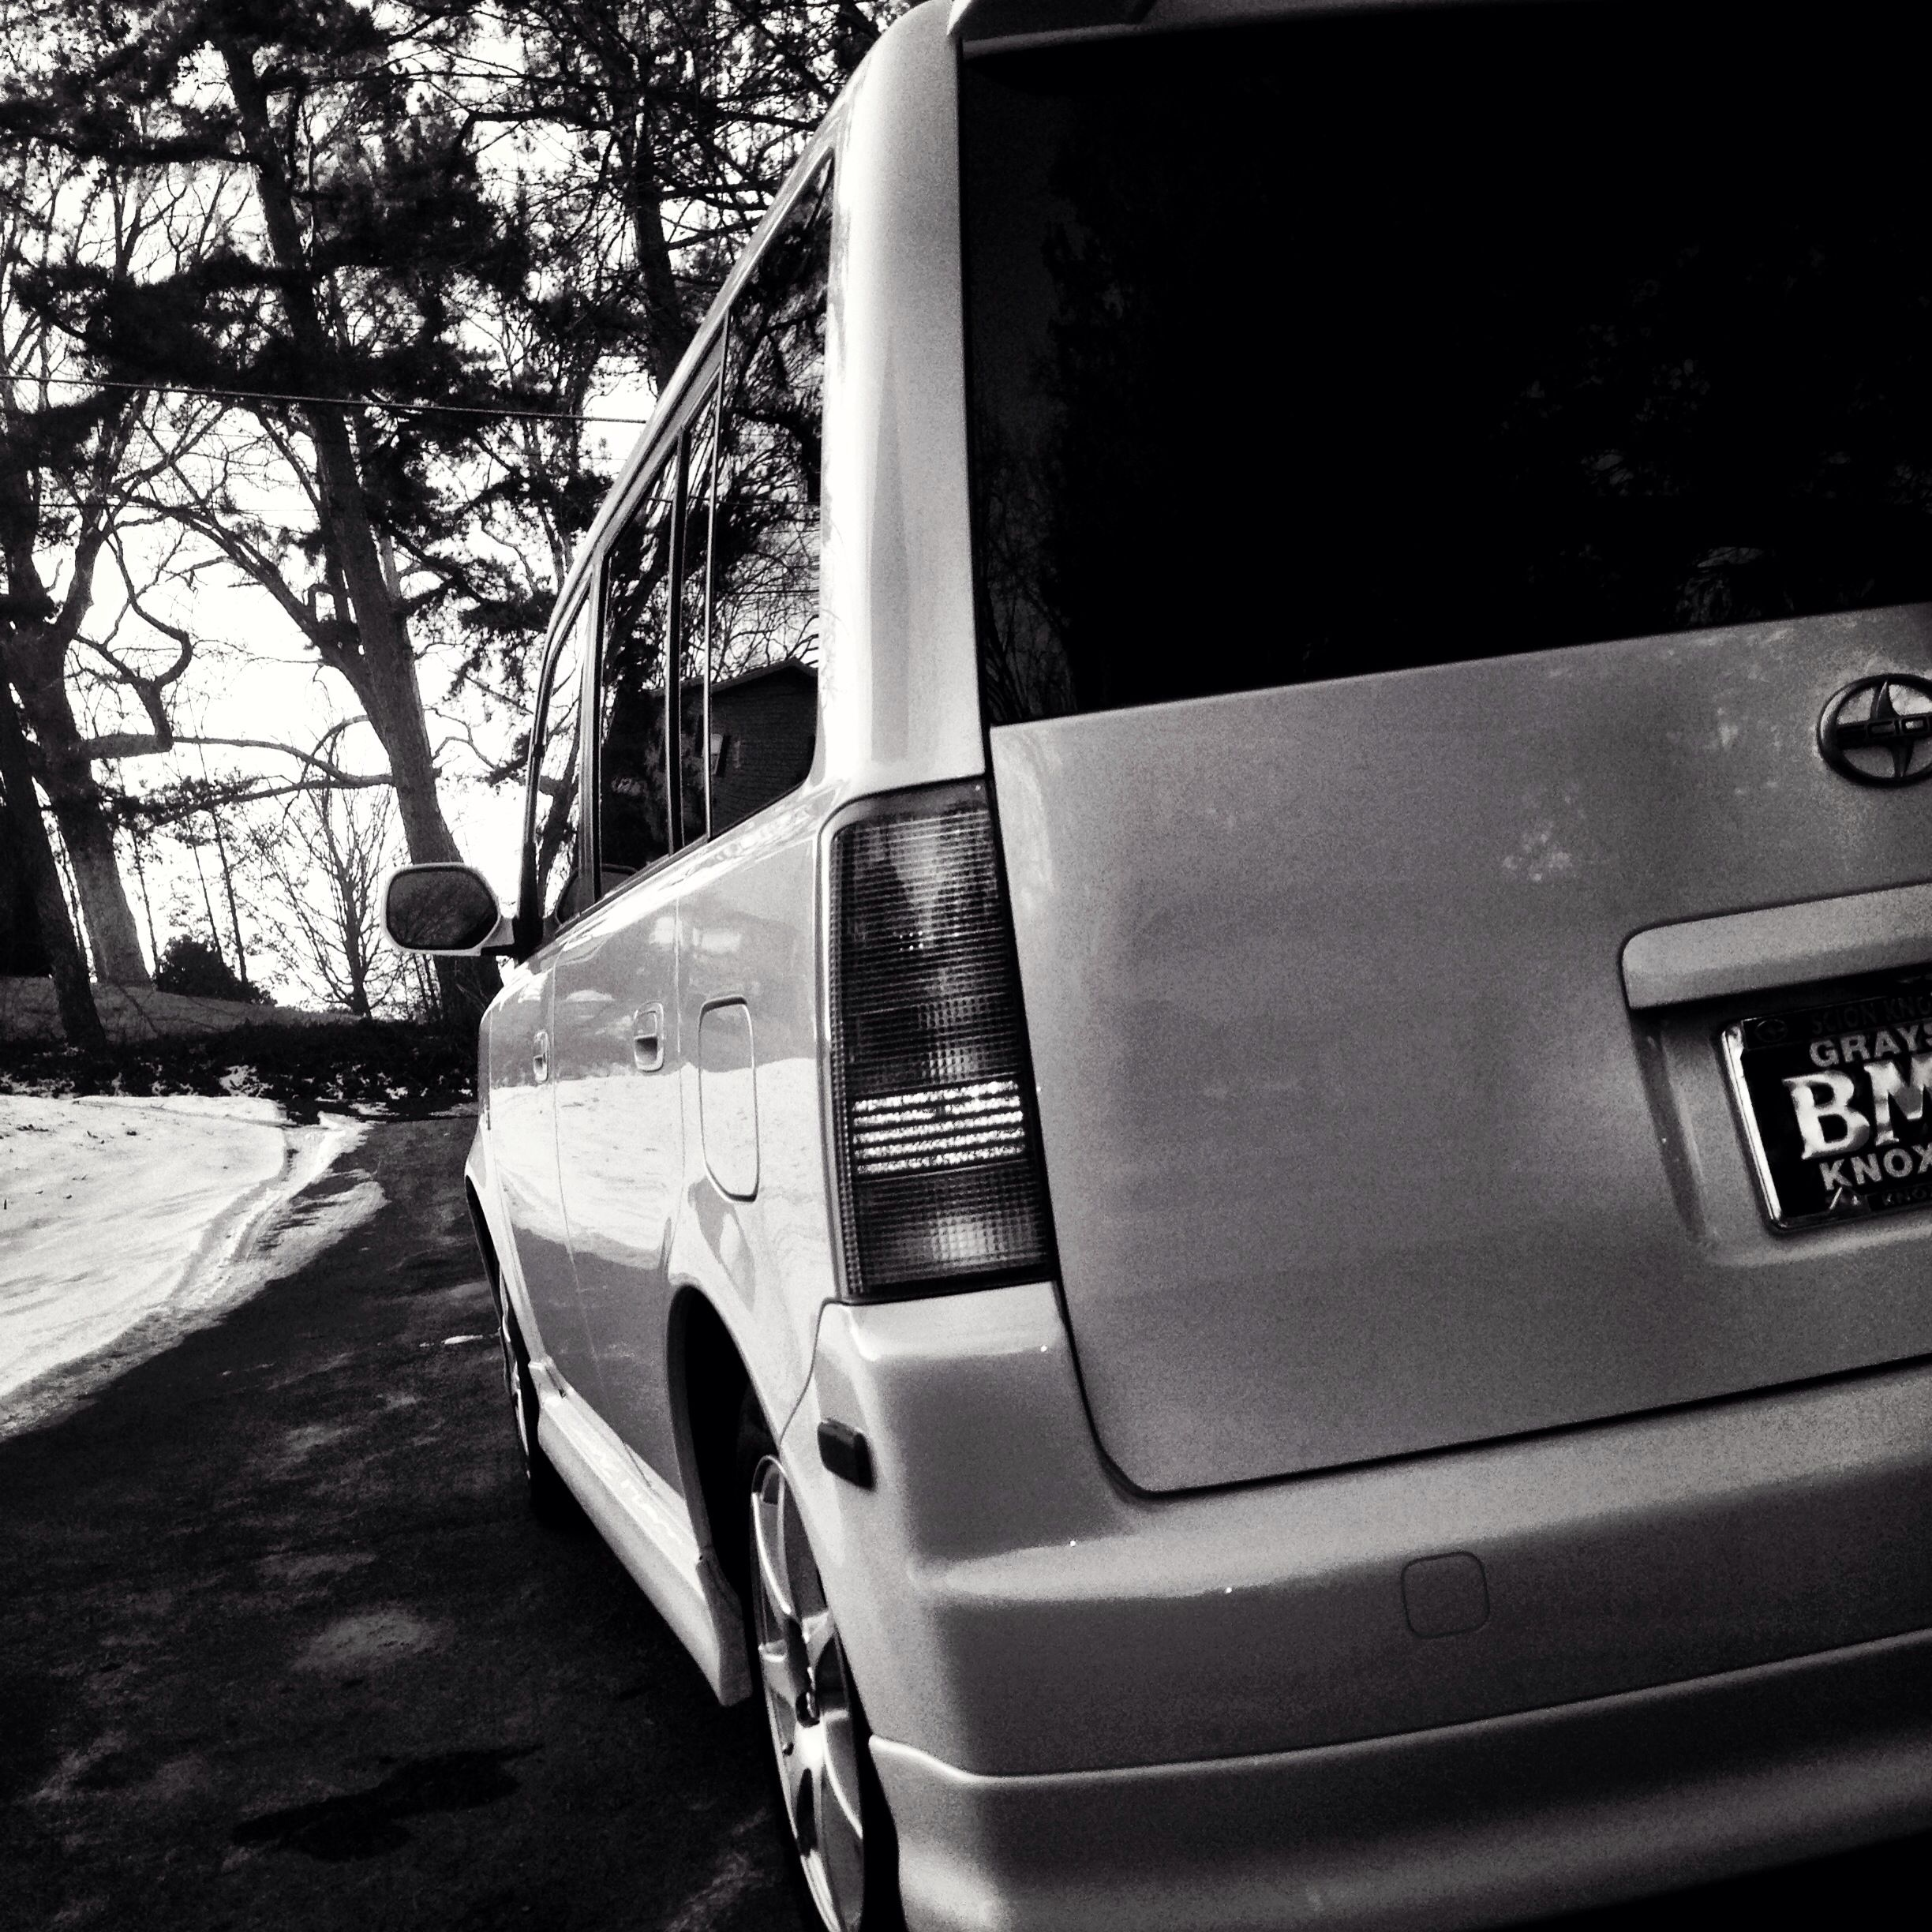 Scion xb 2006 polarwhite snow dope cars